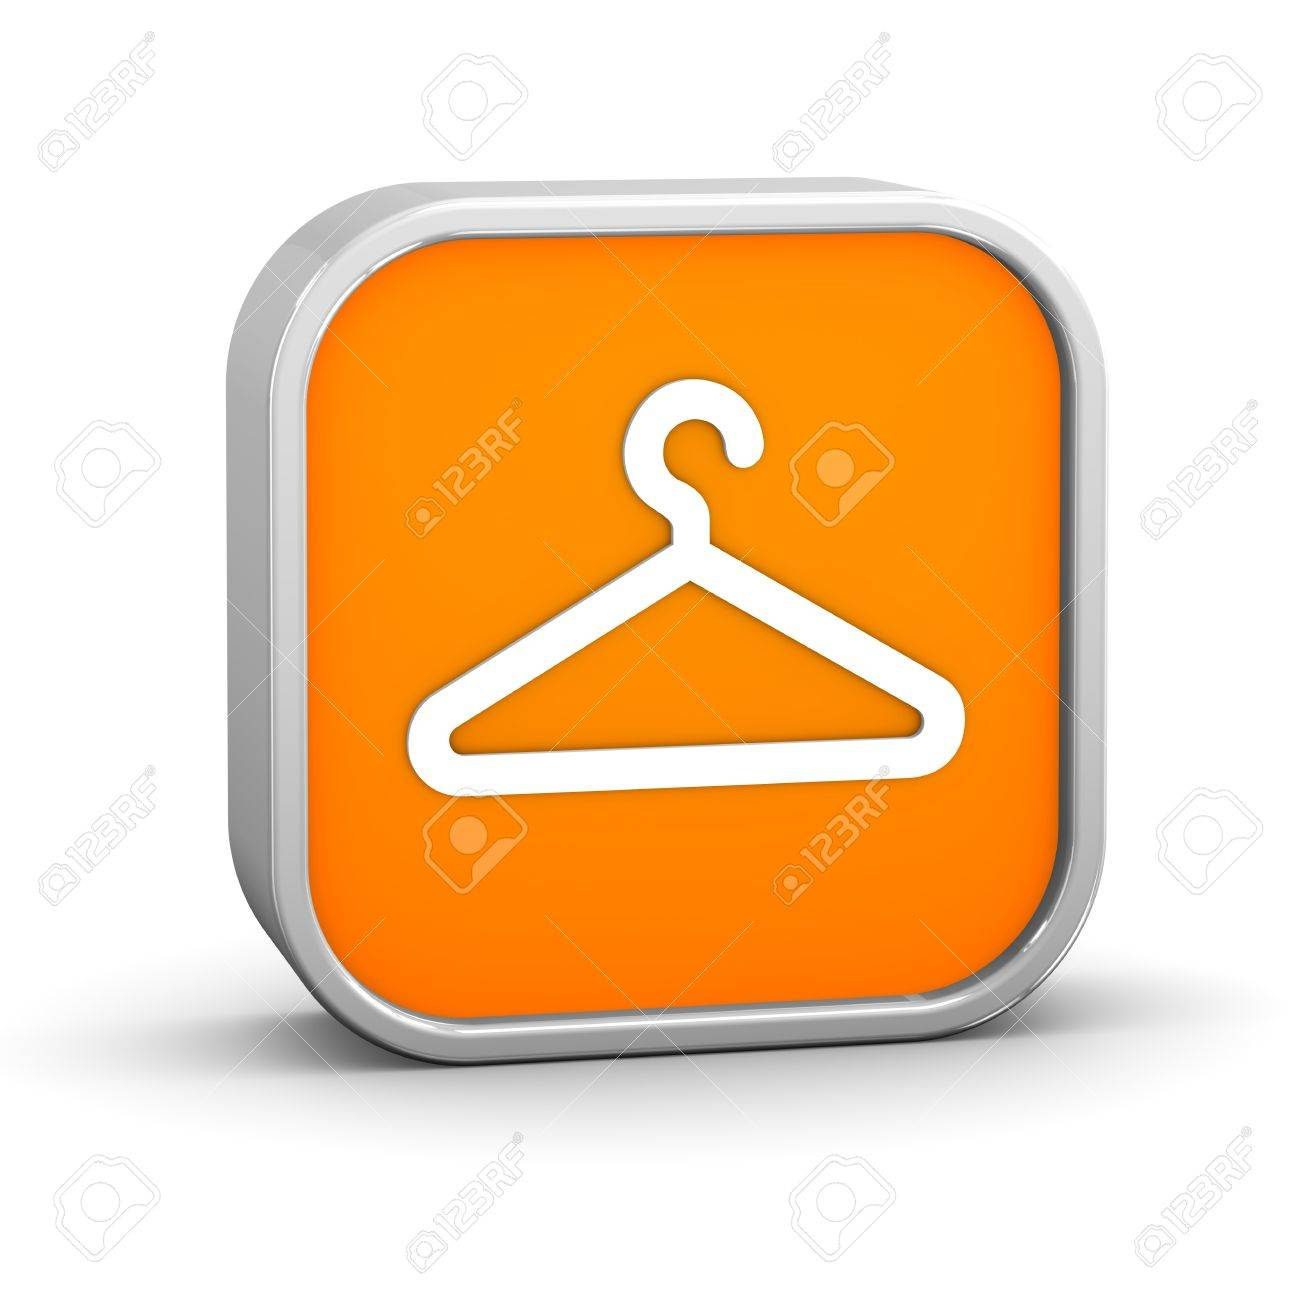 Coat Check Sign On A White Background Part Of Series Stock Photo